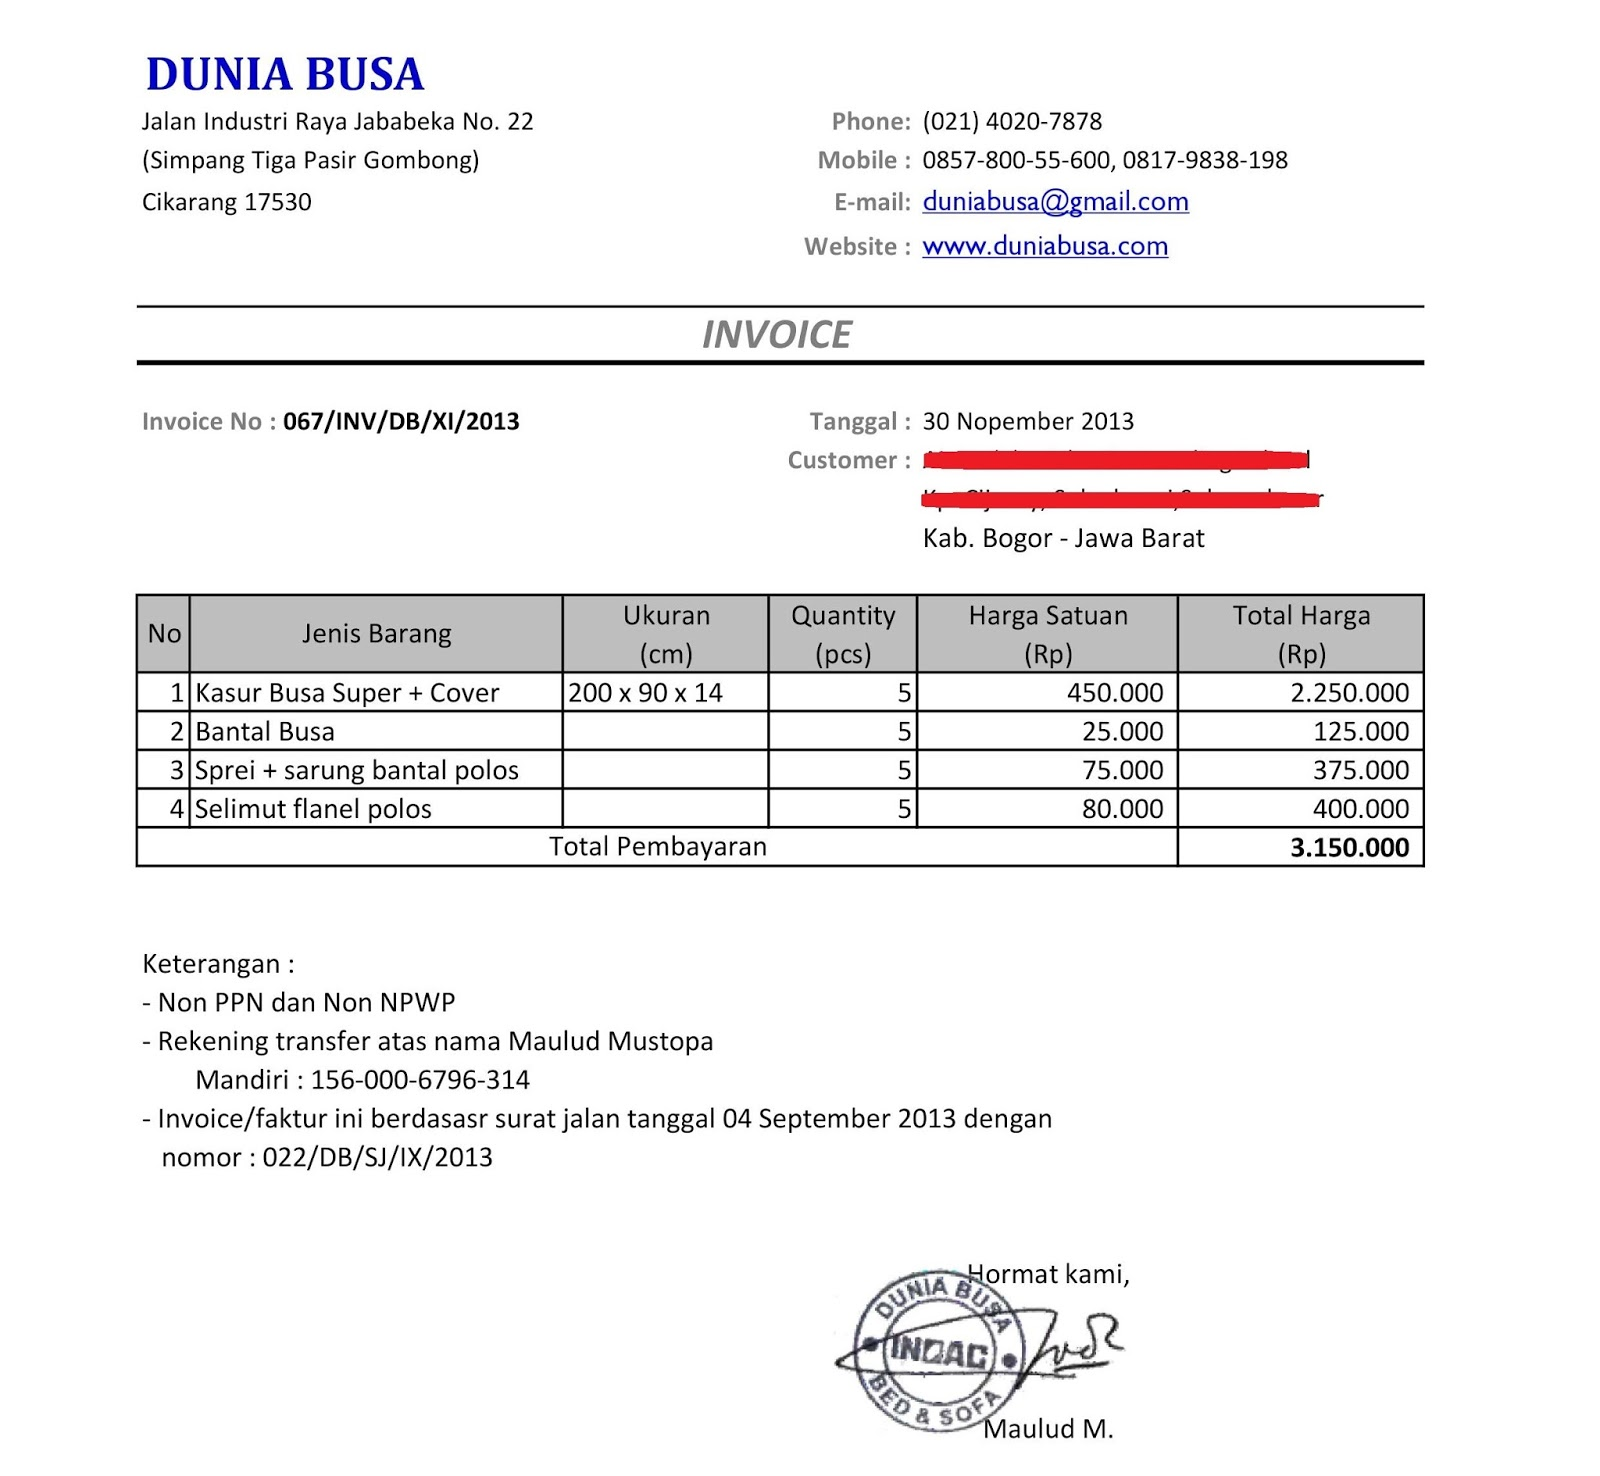 Centralasianshepherdus  Nice Free Invoice Online  Create Invoice Online  Invoice Template  With Goodlooking Contoh Format Invoice Atau Surat Tagihan  Brankas Arsip  Free Invoice Online With Extraordinary Gst Tax Invoice Requirements Also Invoice Discounting Facility In Addition Sale Invoice Format In Excel Free Download And Information On An Invoice As Well As Performa Invoice Template Additionally Invoice Not Paid What Can I Do From Sklepco With Centralasianshepherdus  Goodlooking Free Invoice Online  Create Invoice Online  Invoice Template  With Extraordinary Contoh Format Invoice Atau Surat Tagihan  Brankas Arsip  Free Invoice Online And Nice Gst Tax Invoice Requirements Also Invoice Discounting Facility In Addition Sale Invoice Format In Excel Free Download From Sklepco